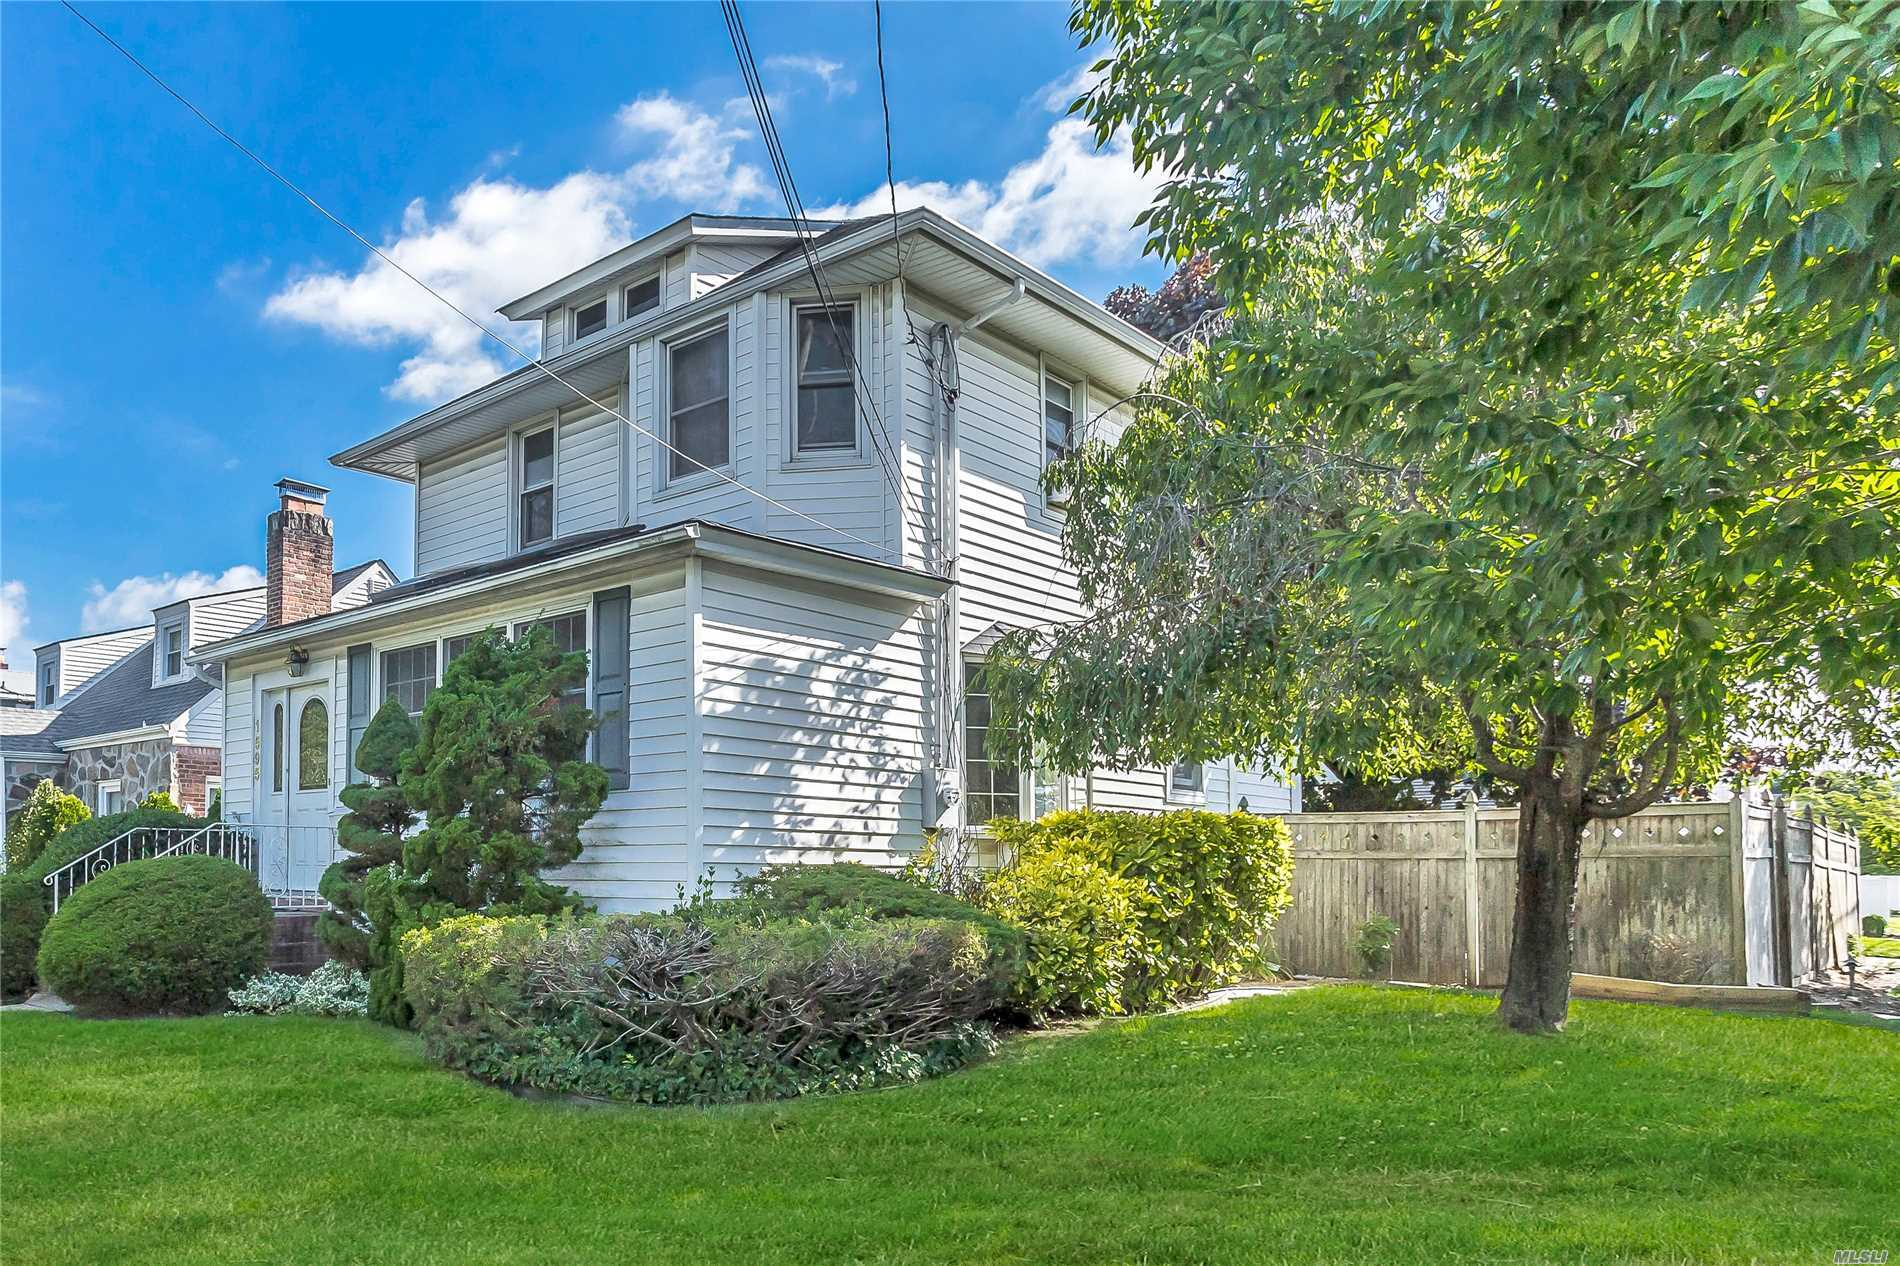 Charming Corner Colonial With Bay Windows; Updated Kitchen W/Stainless Steel Appliances And Granite Counter-Tops; Radiant Floor Heat, Hard Wood Floors, Updated Bath, Detached Garage, Prof. Landscaped Property With 3 Zone Sprinkle System. 3 Zone Gas Heat. Low Taxes.